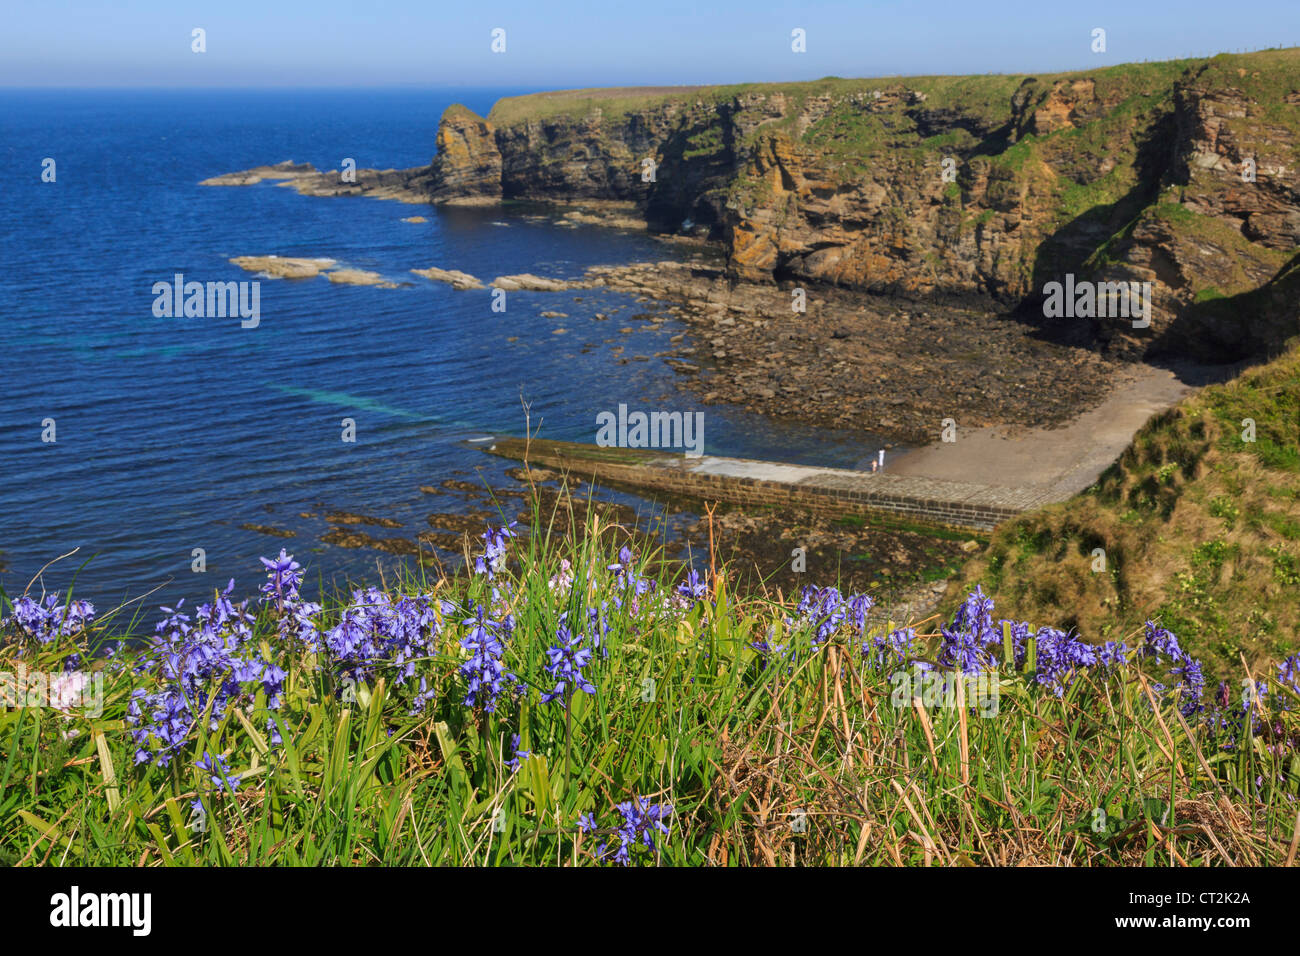 View east along rocky coastline from Dunnet Head with Bluebell flowers flowering in early summer. Brough Caithness - Stock Image